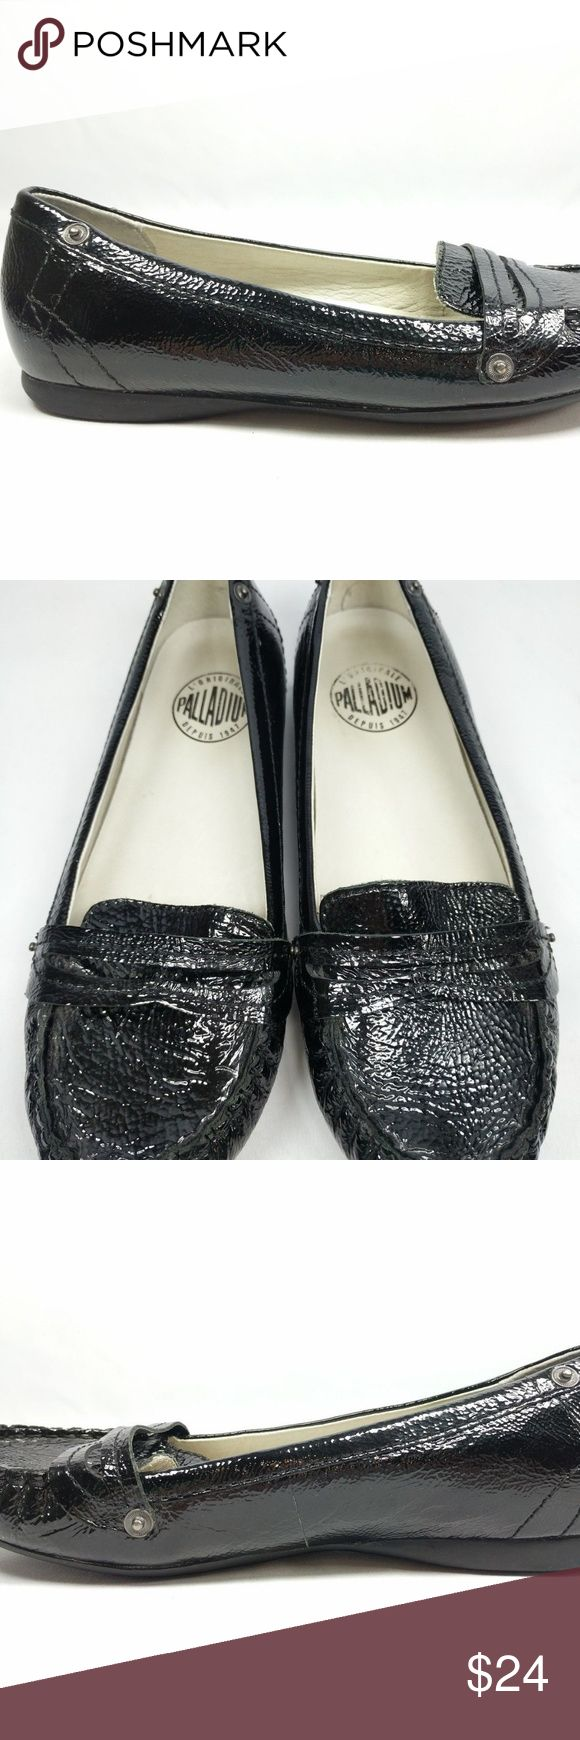 Palladium Size 8.5 Black Leather Loafer Flats Palladium Womens US Shoe Size 8.5 EU Shoe Size 39.5 Black Genuine Leather Upper Leather Lining Loafer Penny Loafer Flats Rivets Moc Toe Please see pictures for condition of item  Thanks so much :)  Positive Vibes Only! Palladium Shoes Flats & Loafers